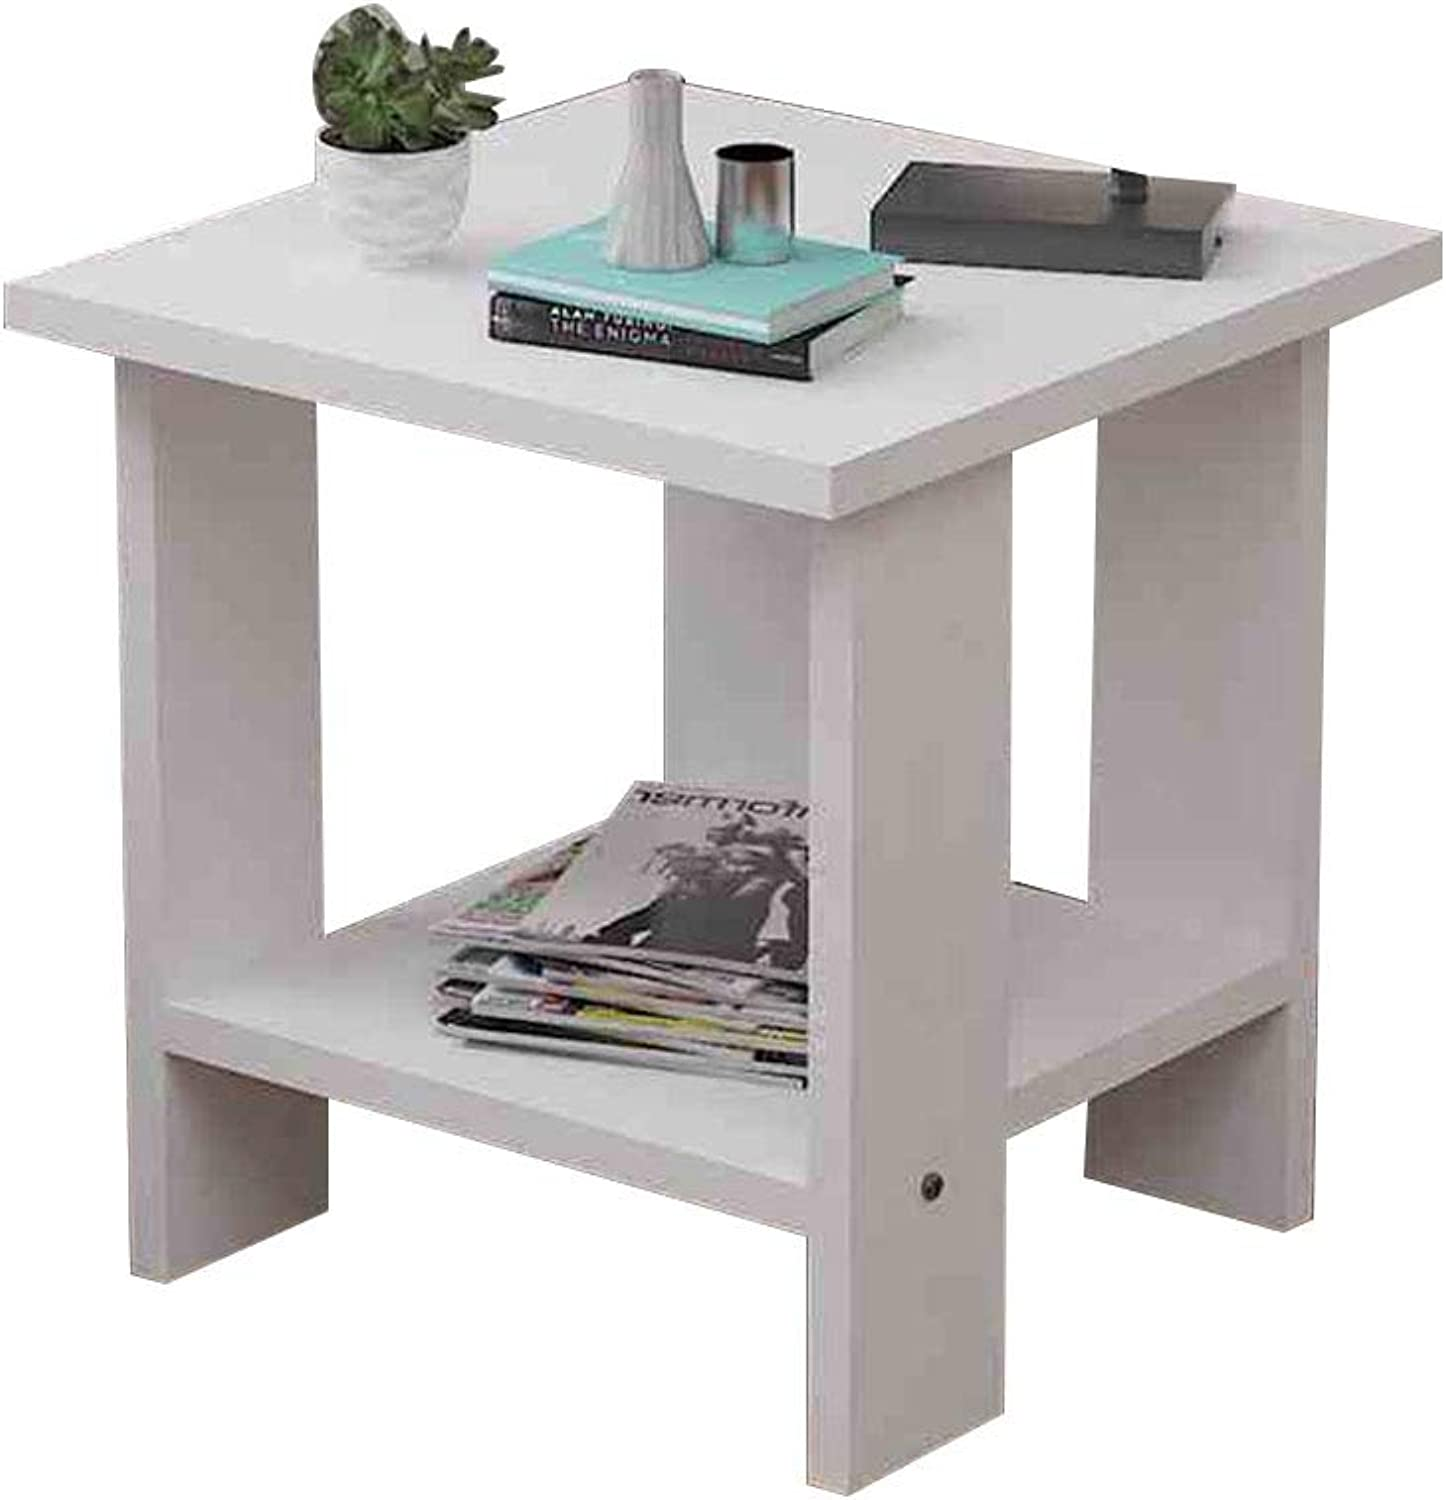 Coffee Table Side Table,Small Apartment Corner Table,Modern Simplicity Snack Table, Suitable for Living Room Sofa Side Bedroom Bedside (Size   40  40  42cm)